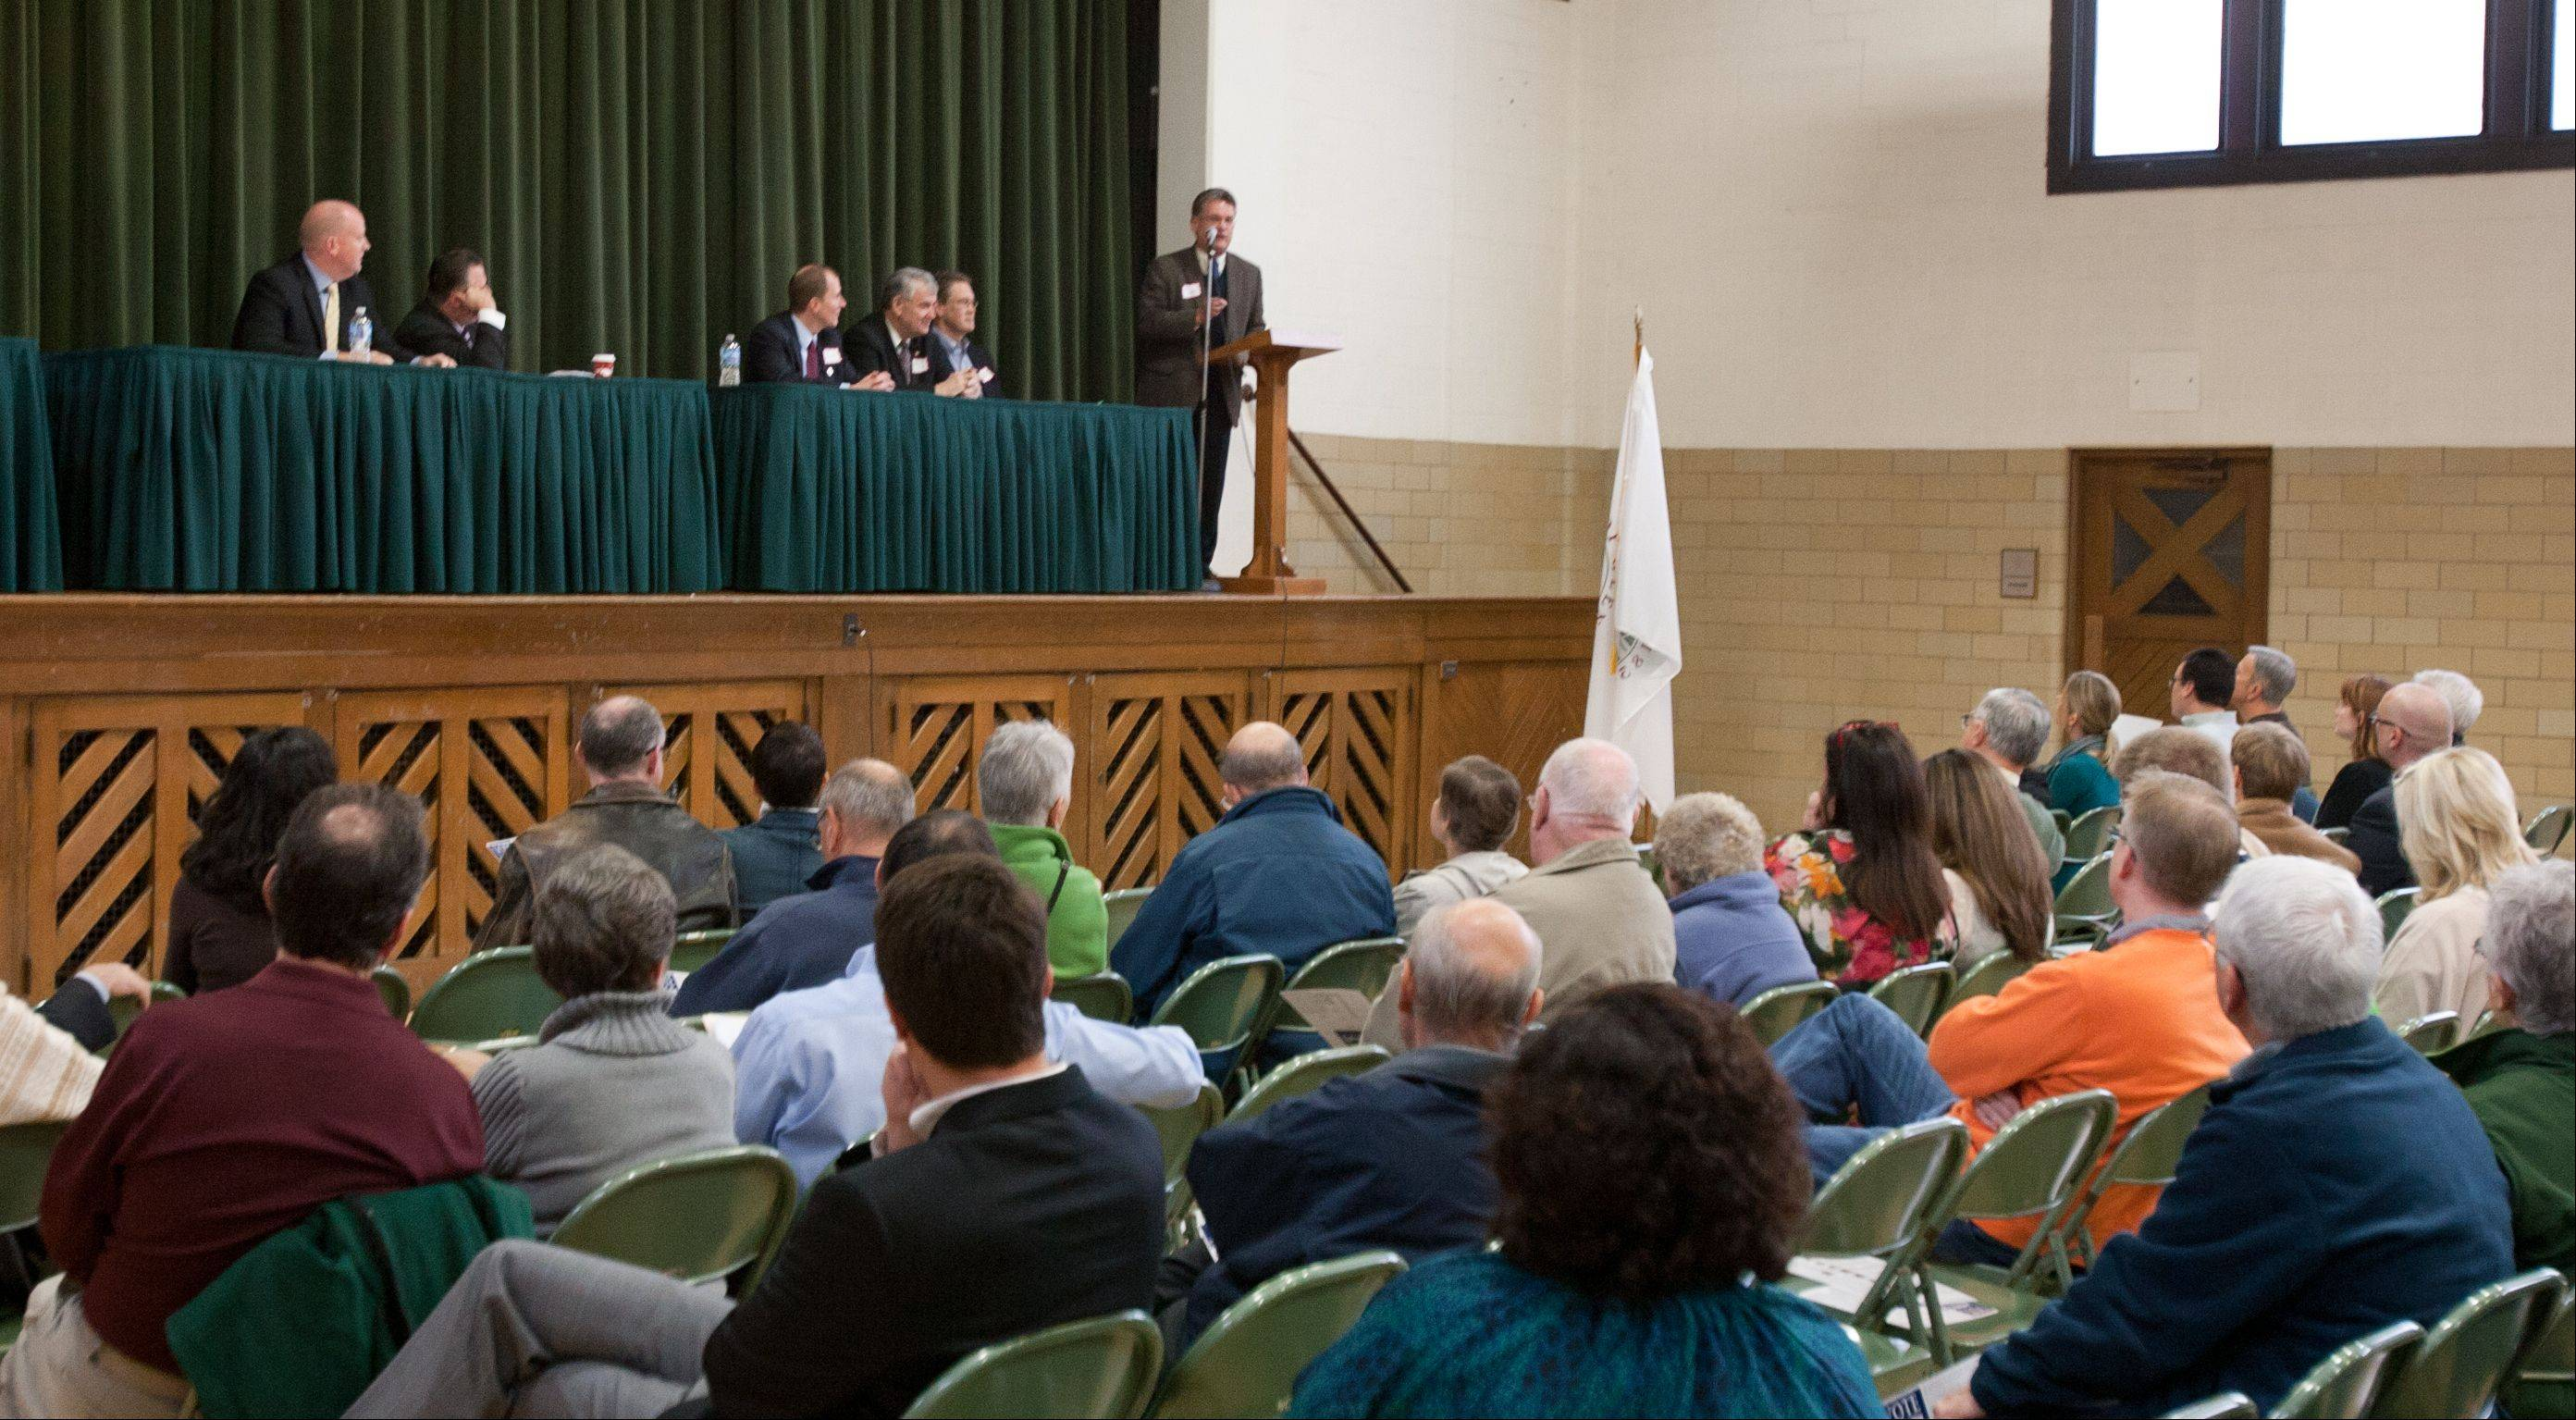 The Glen Ellyn Civic Betterment Party held its biennial town meeting Saturday, where residents selected candidates to appear on the spring 2013 ballot.